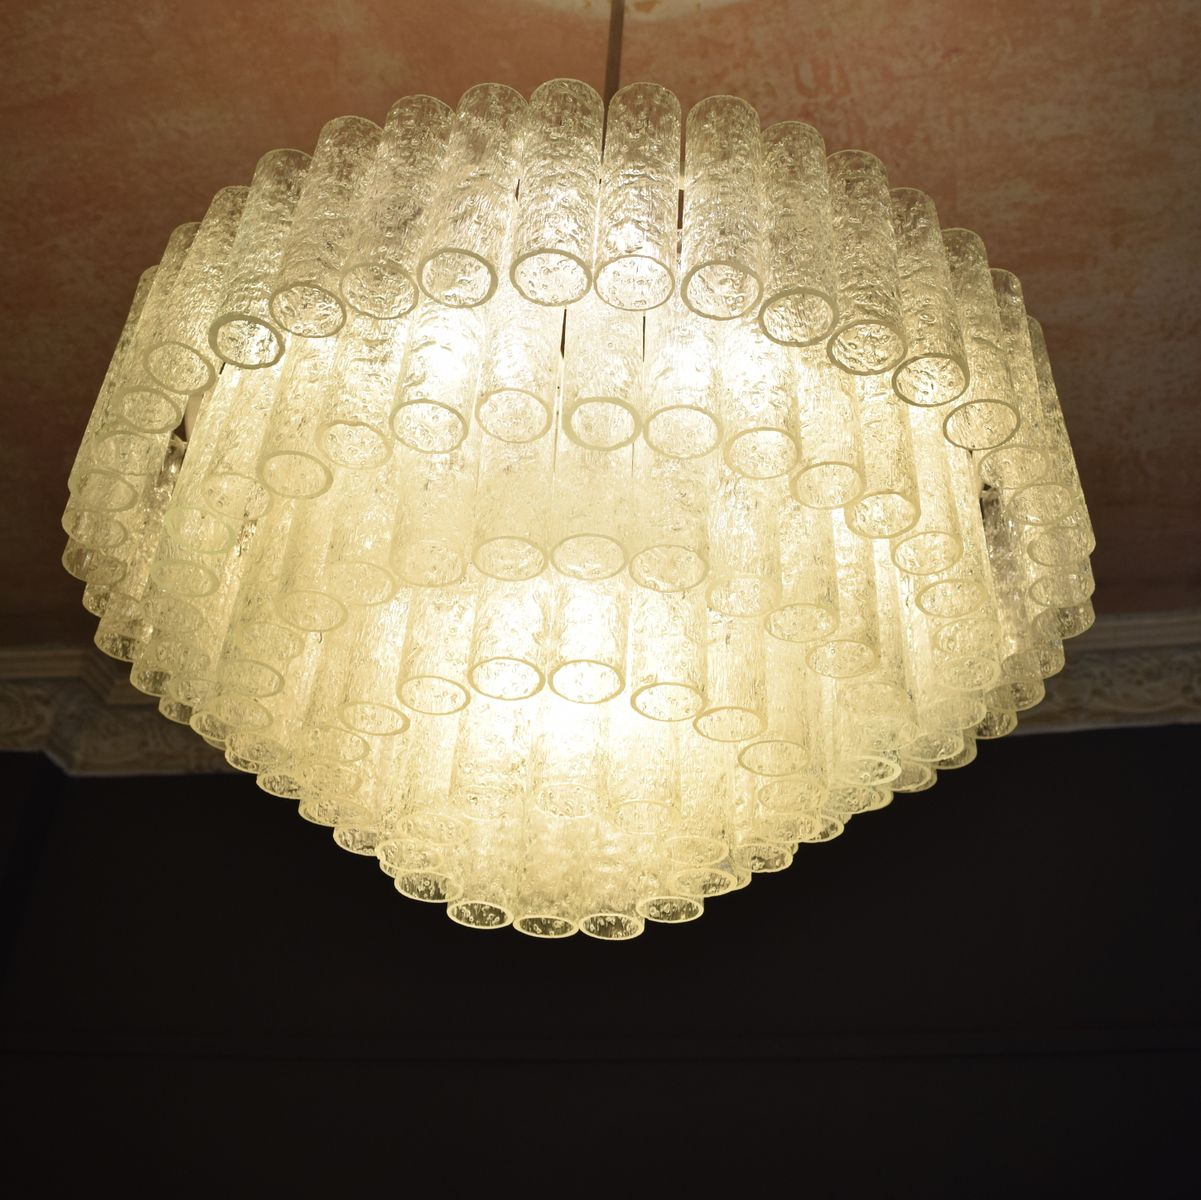 MidCentury Murano Glass Chandelier form Doria 1960s for sale at